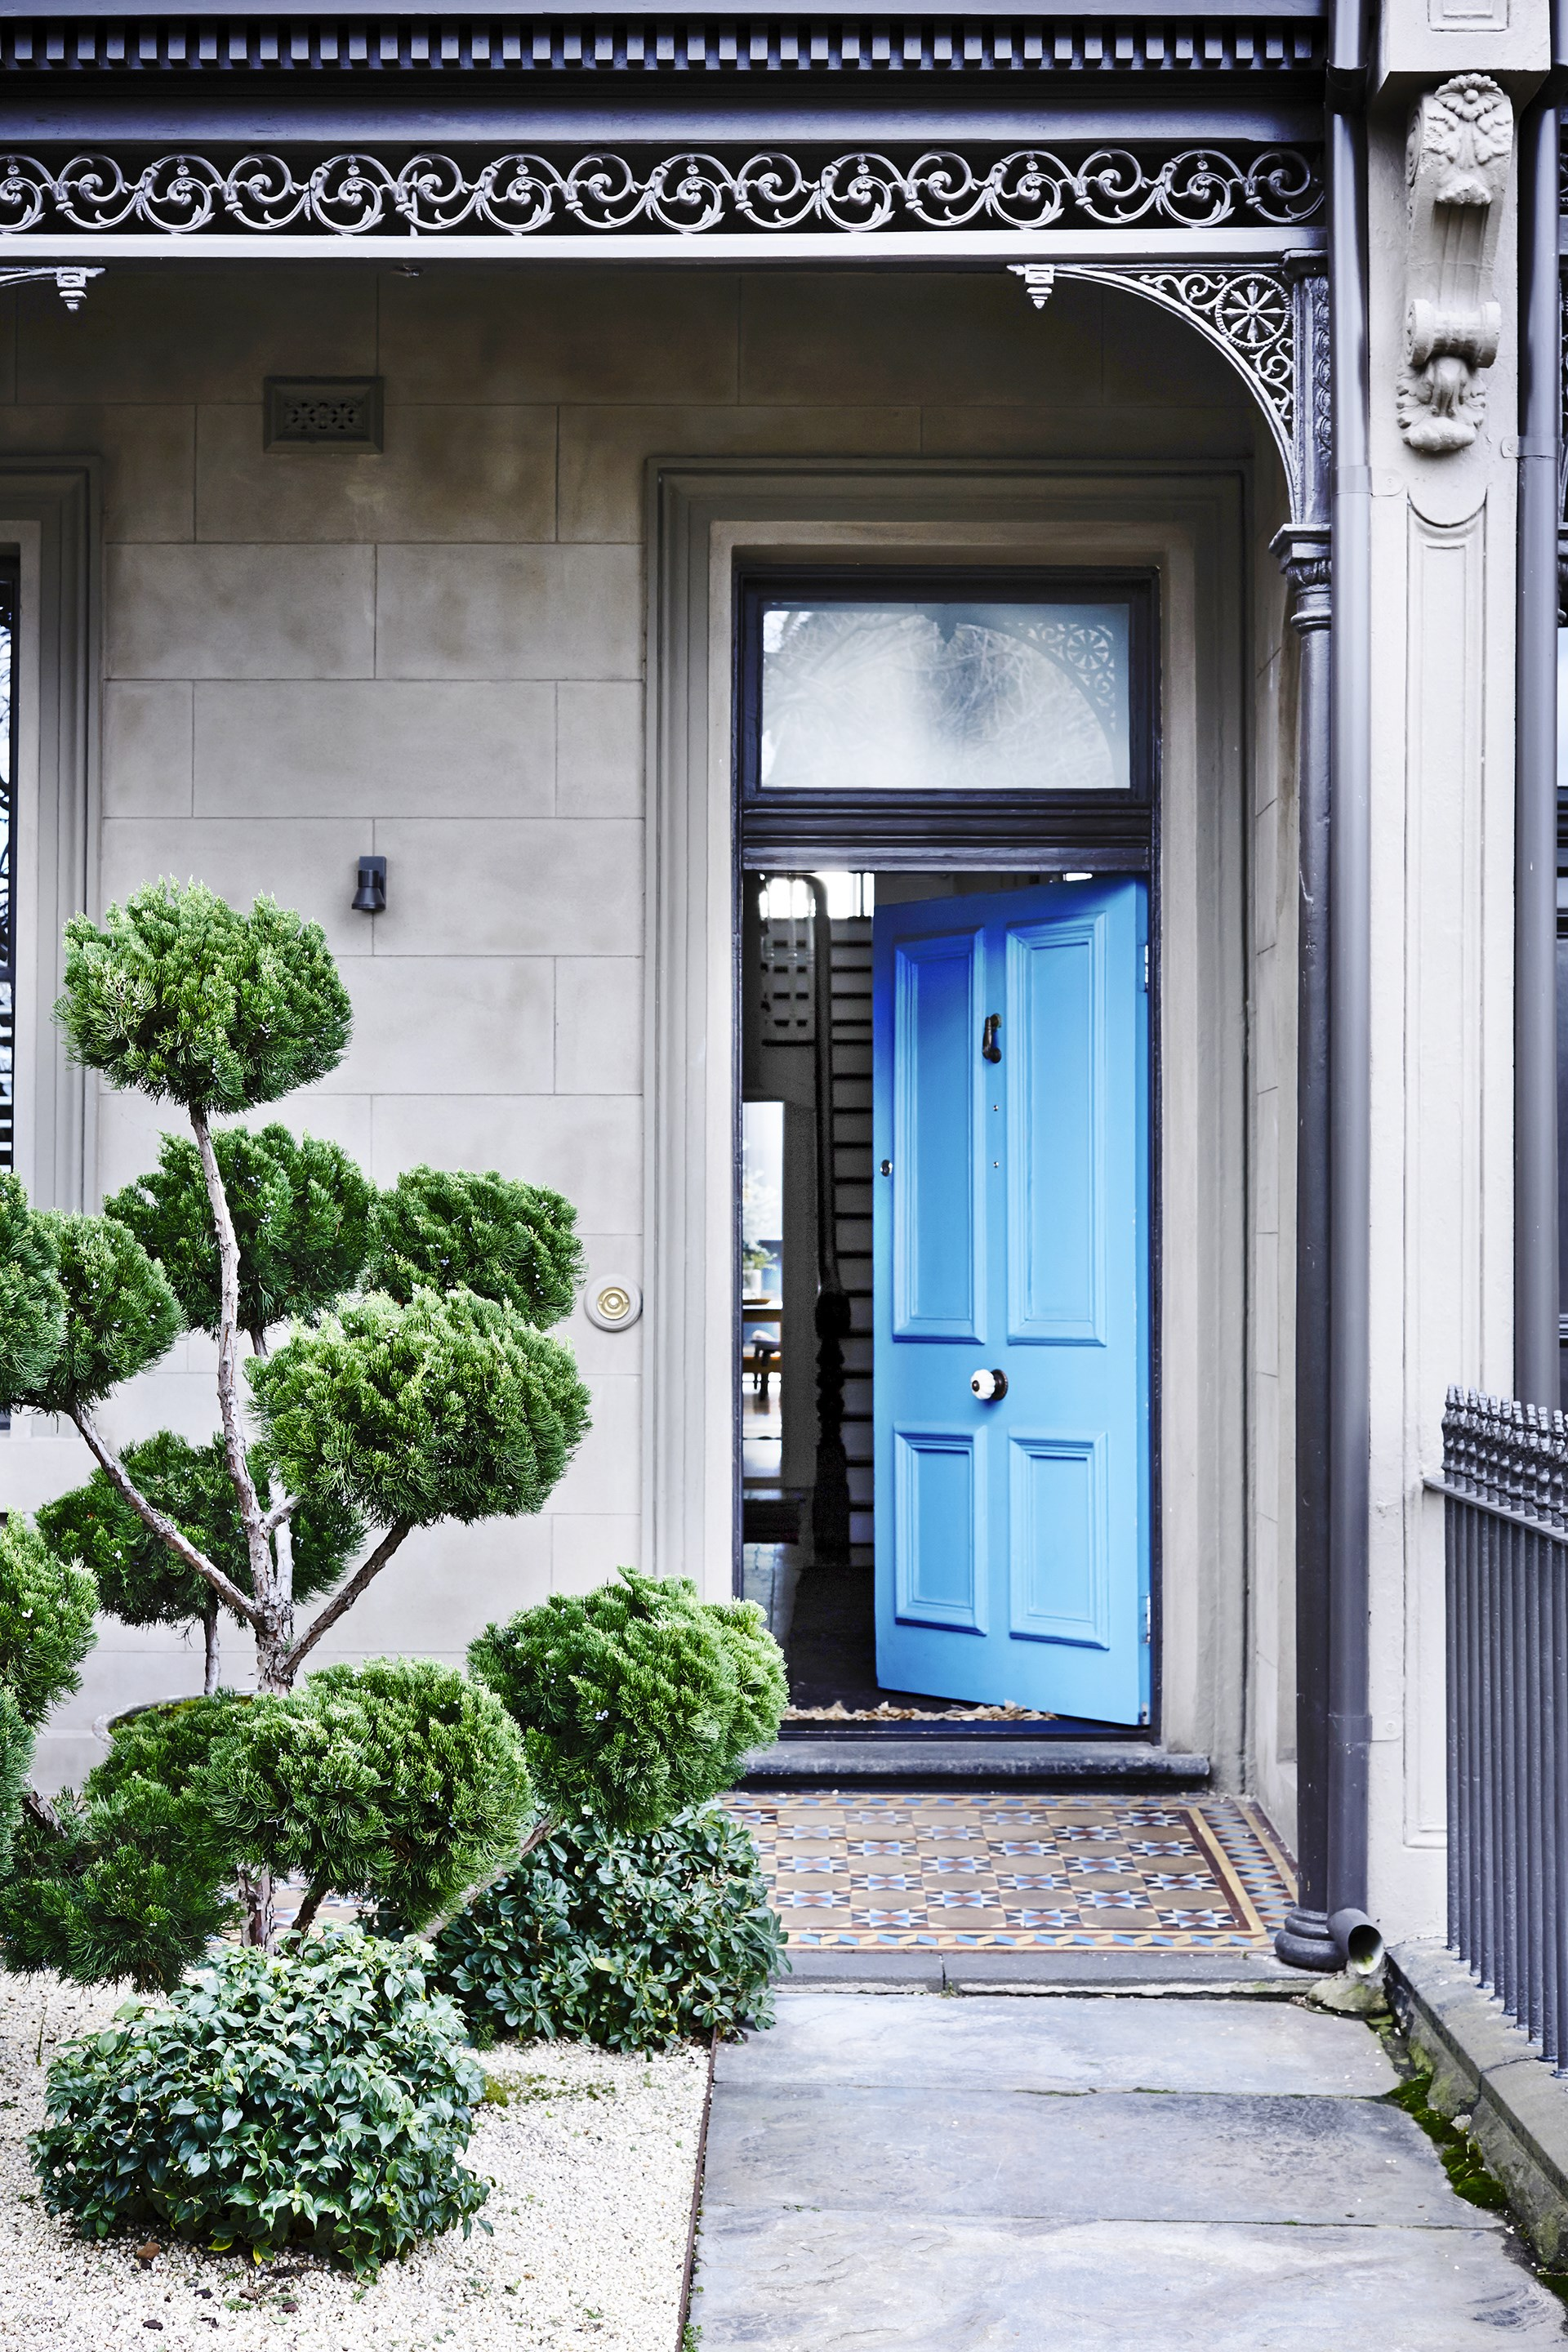 """A bright blue front door promises something special inside this [Victorian terrace in Melbourne](http://www.homestolove.com.au/gallery-annick-and-stephens-chic-terrace-extension-2327), where a [modern rear extension](https://www.homestolove.com.au/modern-extensions-on-old-houses-6701